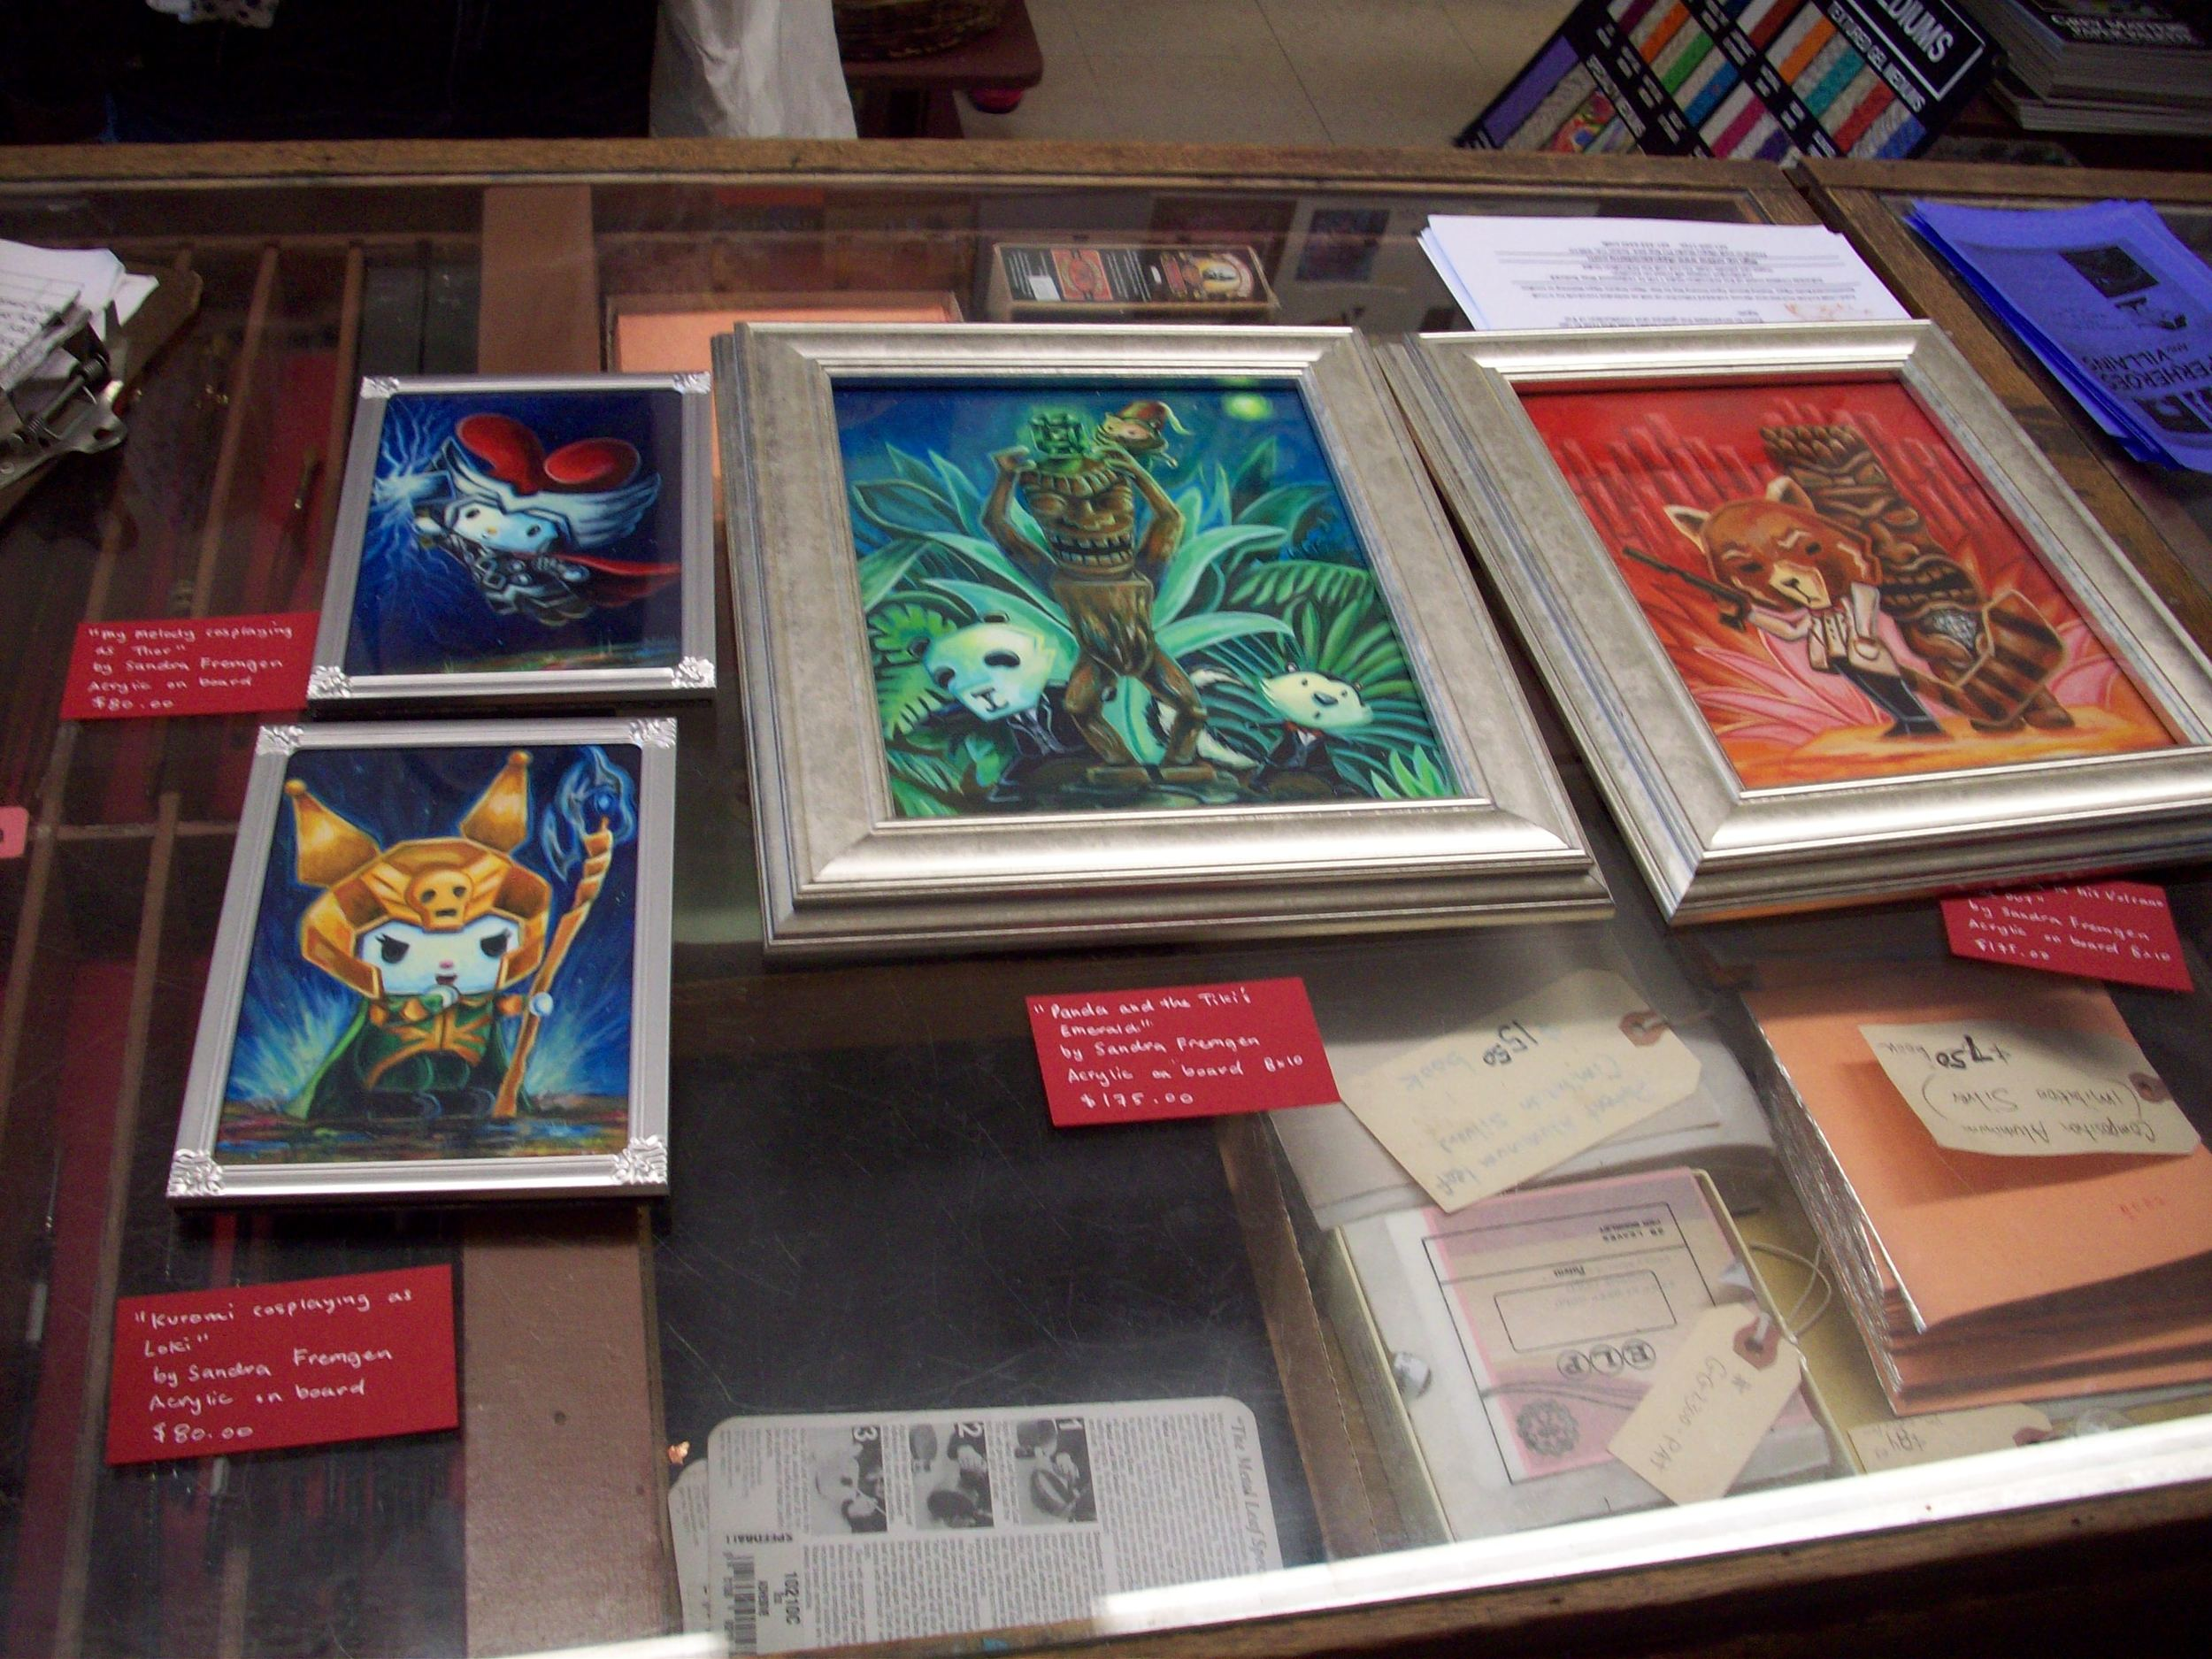 I brought over my artwork on Saturday to the store and filled out cards describing the art! I loooooove the silver frames i got at Micheal's Arts and Crafts